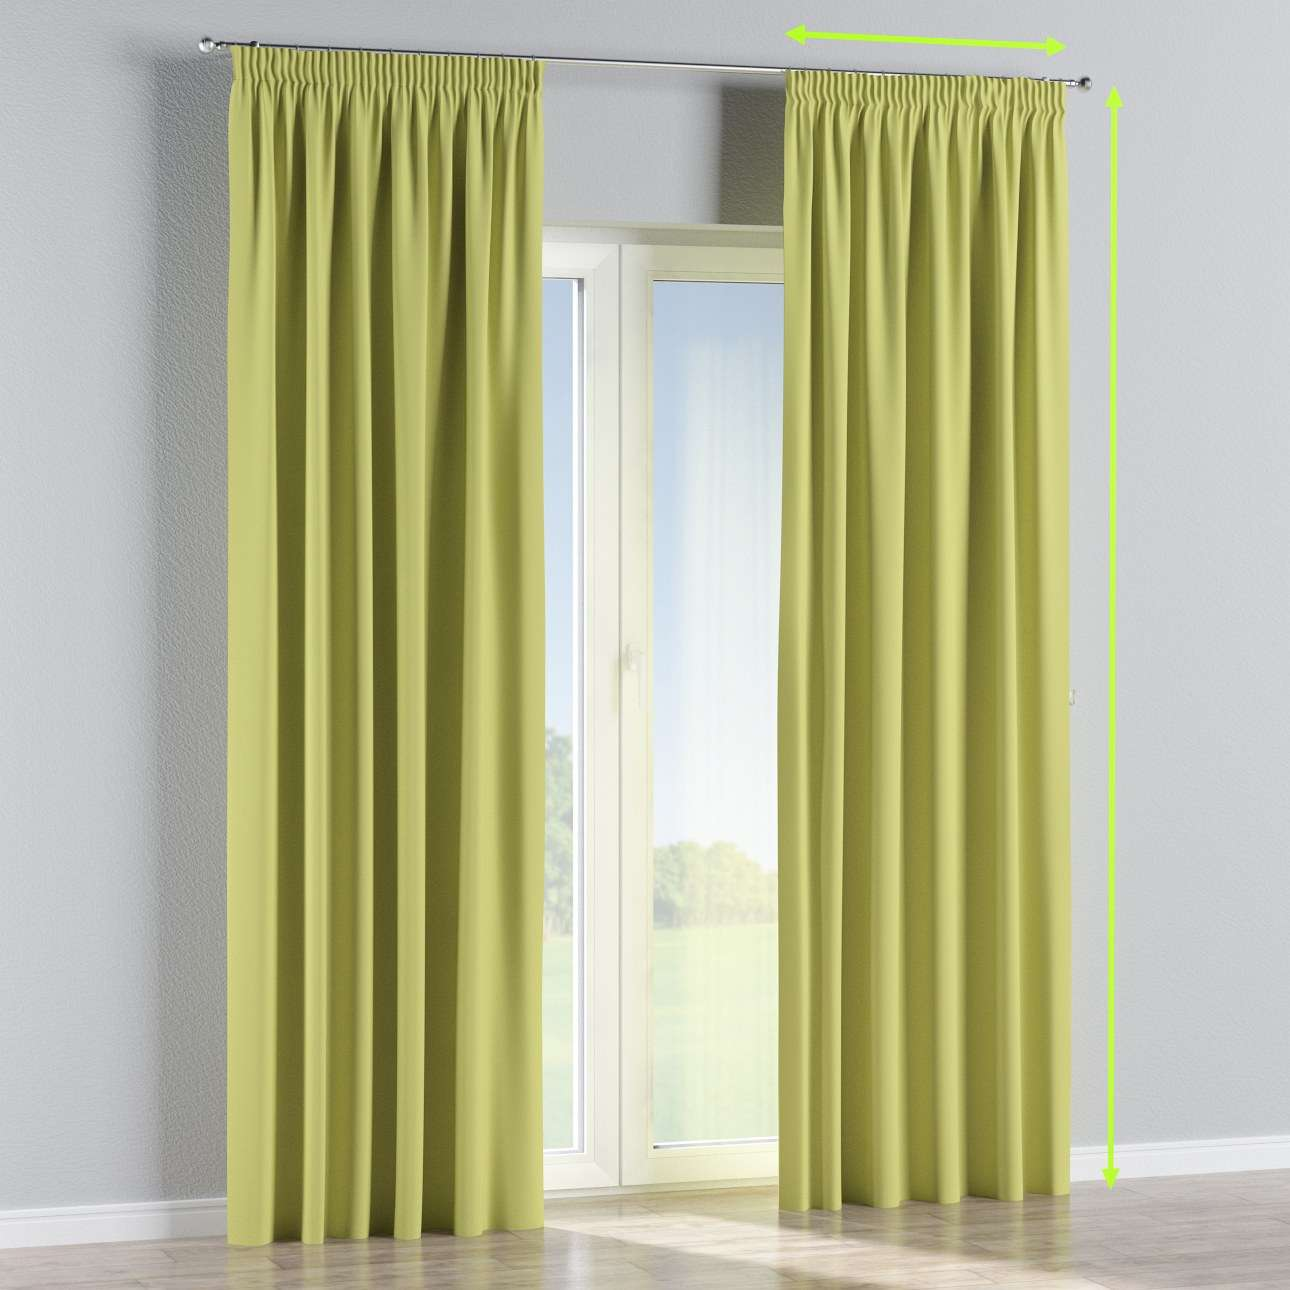 Blackout pencil pleat curtain in collection Blackout, fabric: 269-17